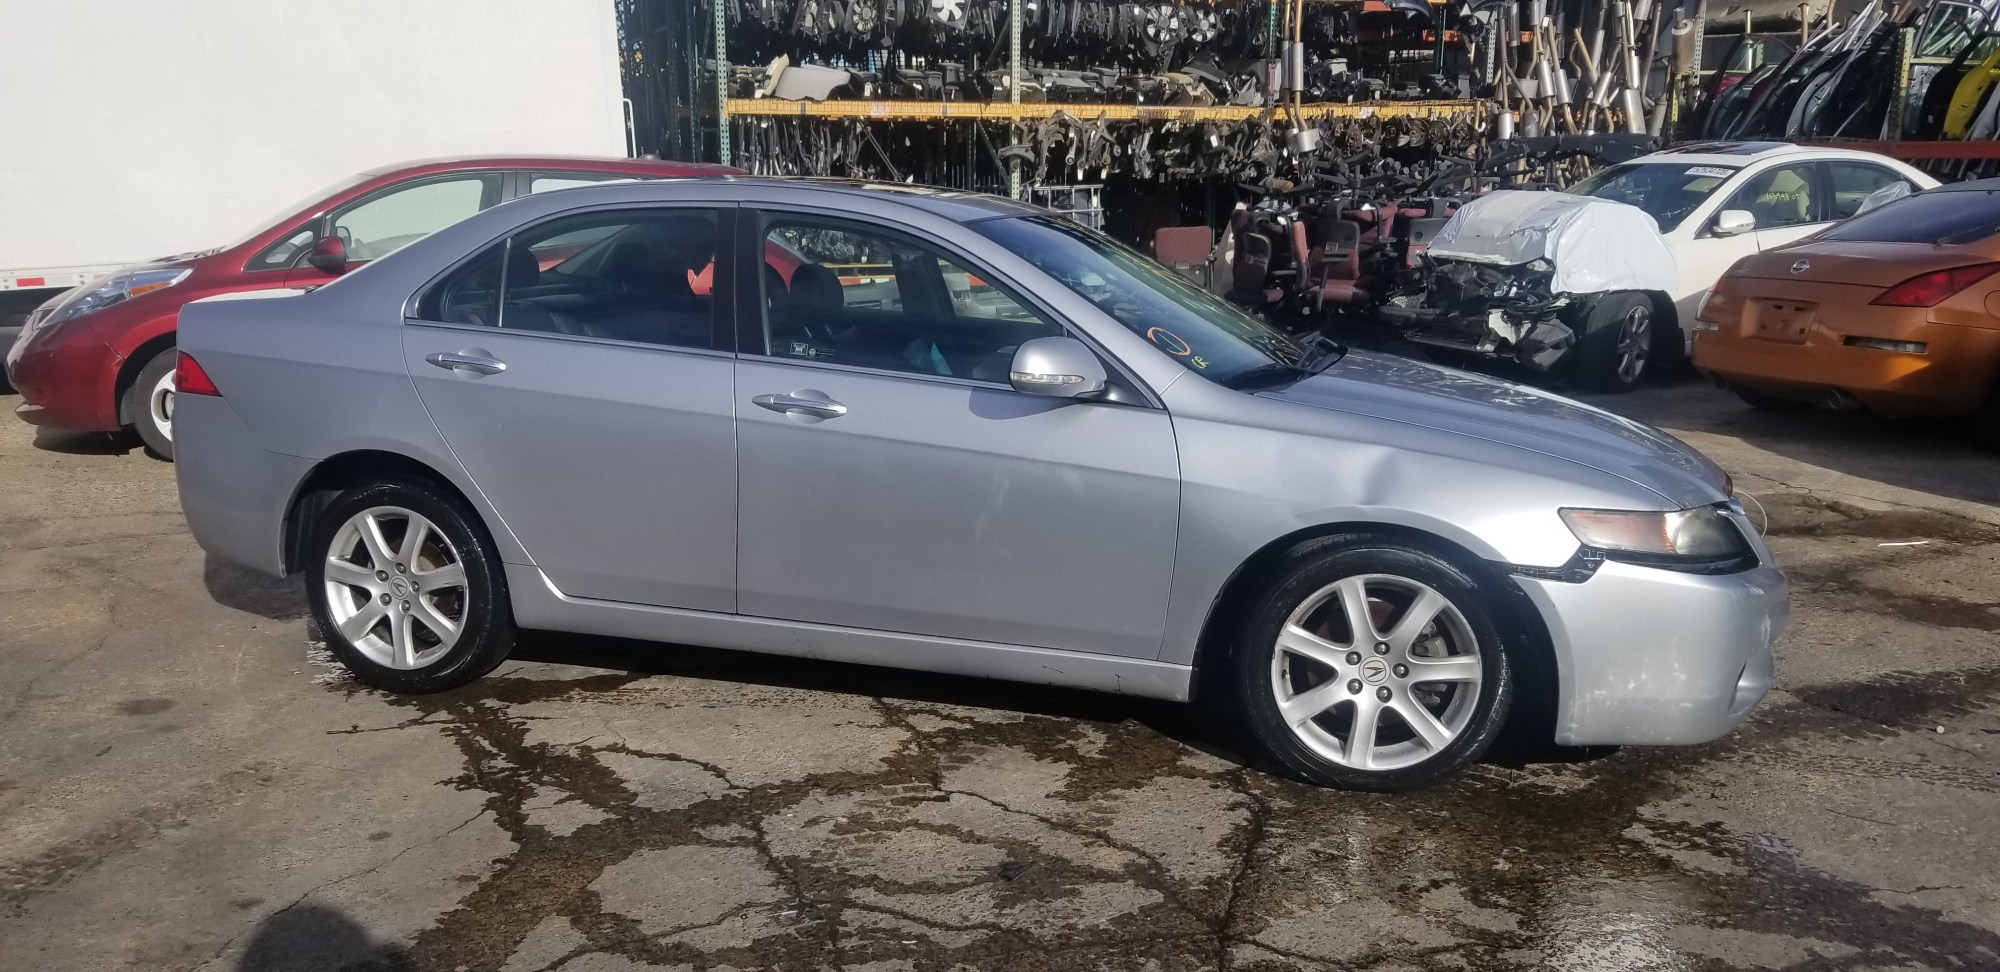 hight resolution of year 2004 make acura model tsx vin jh4cl96984c031238 odometer 0 engine 2 4 liter 4 cylinder transmission automatic color exterior silver